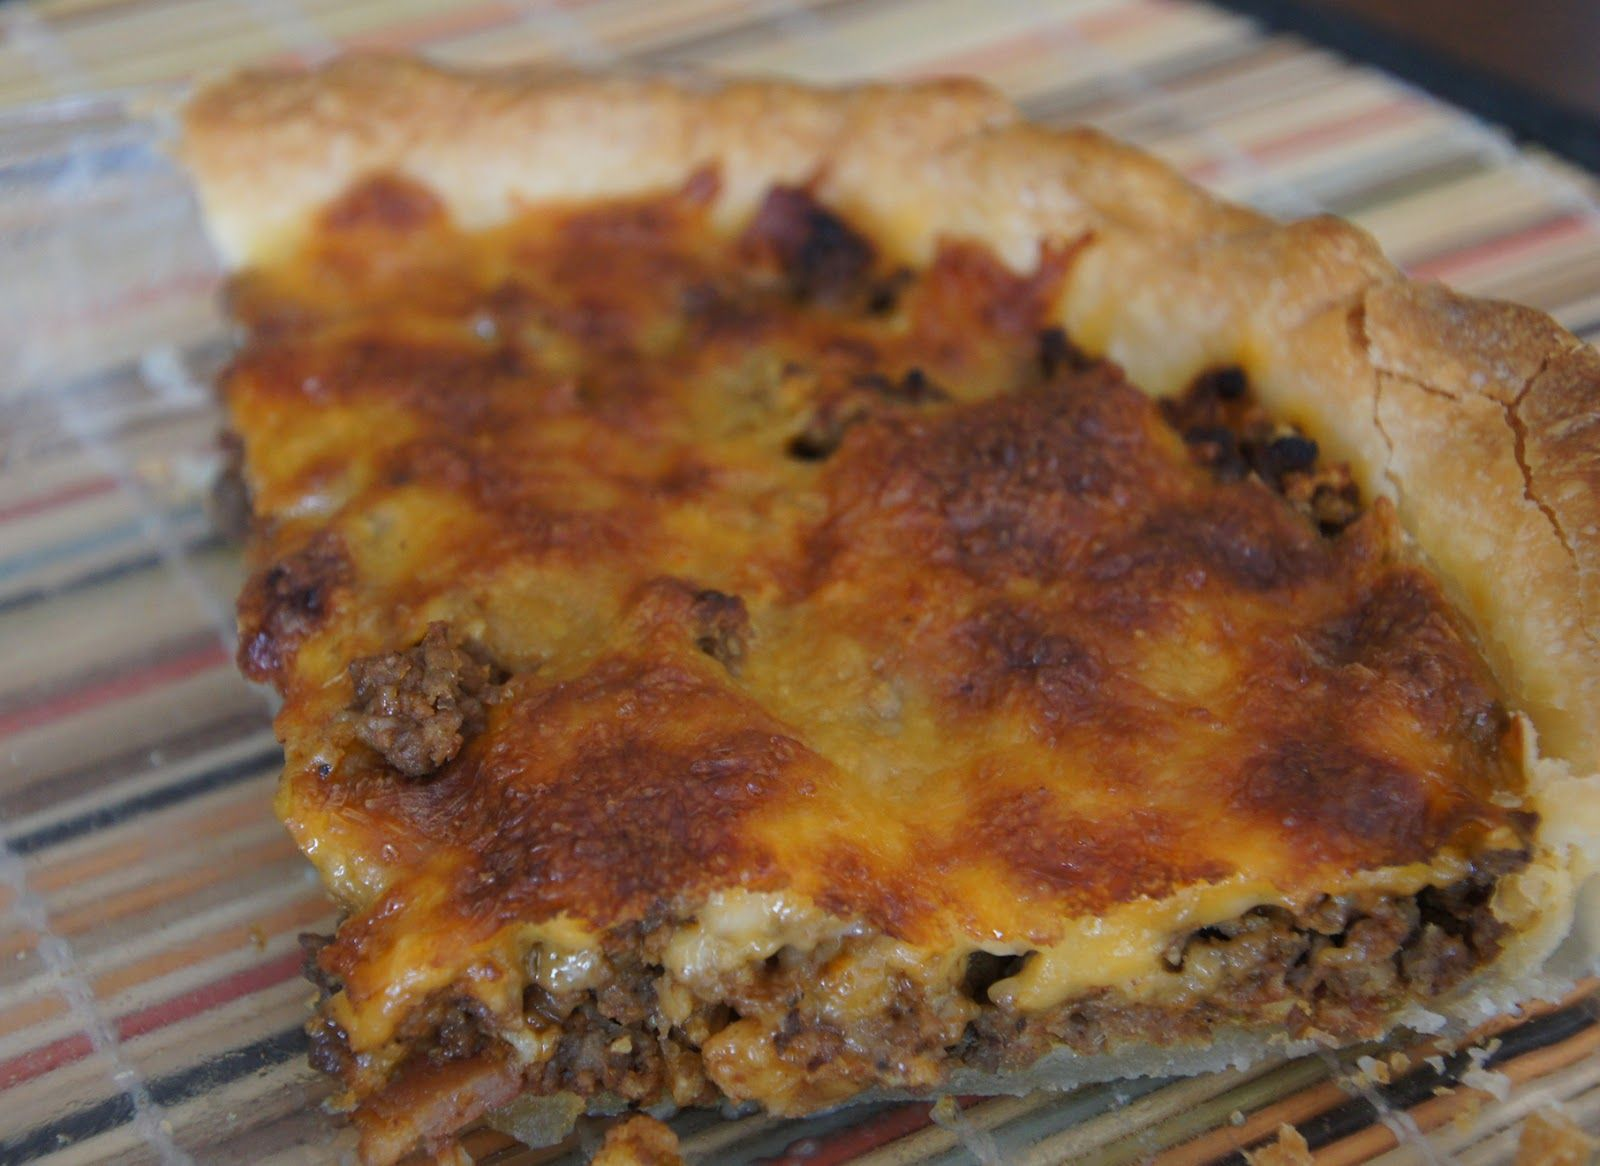 Little Bit of Everything: Bacon Cheeseburger Pie